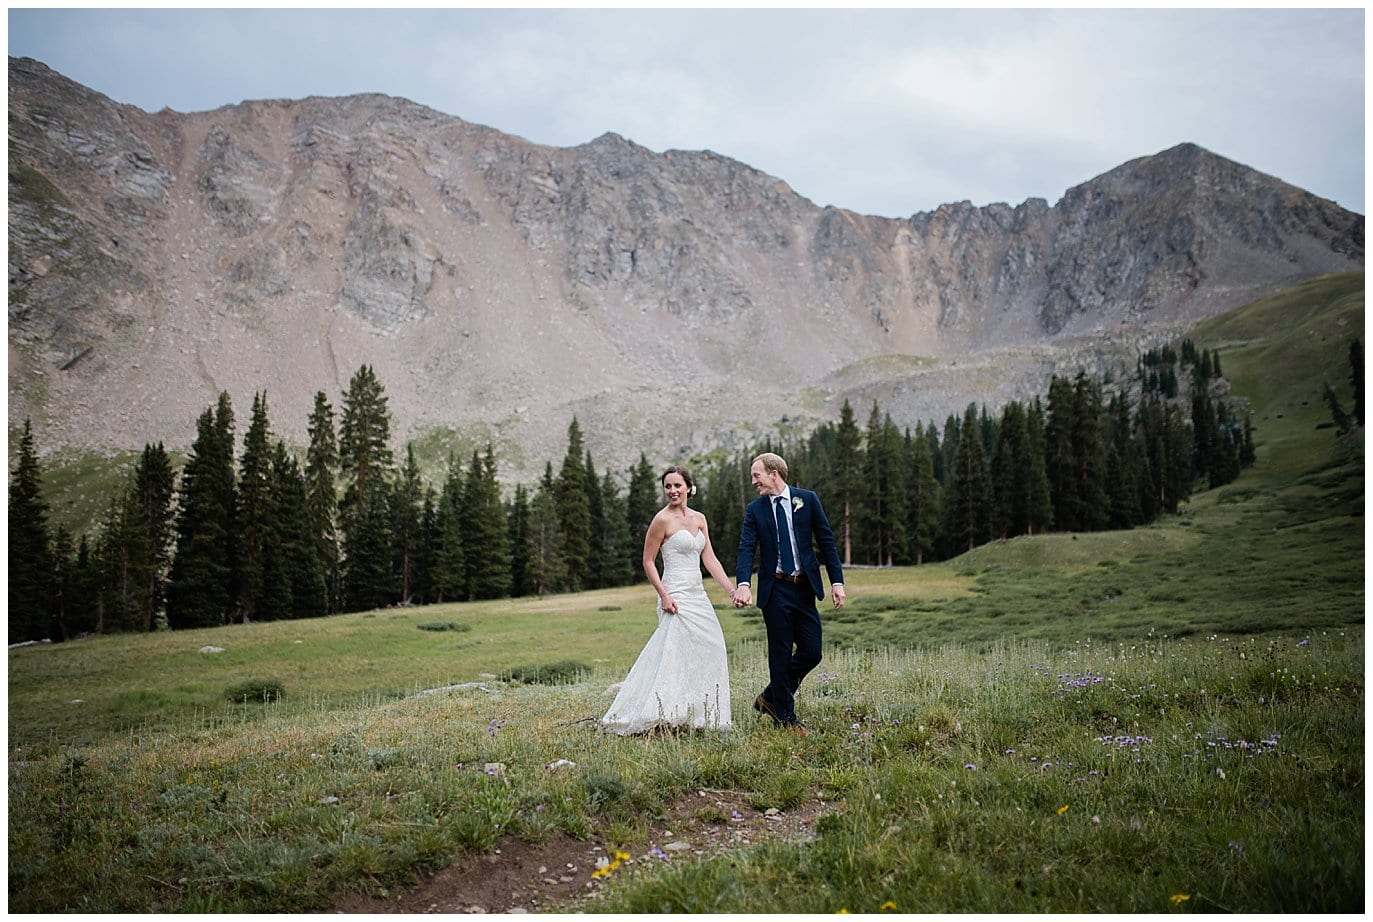 Bride and groom walking in mountains at Arapahoe Basin Black Mountain Lodge Wedding by Arapahoe Basin Wedding Photographer Jennie Crate